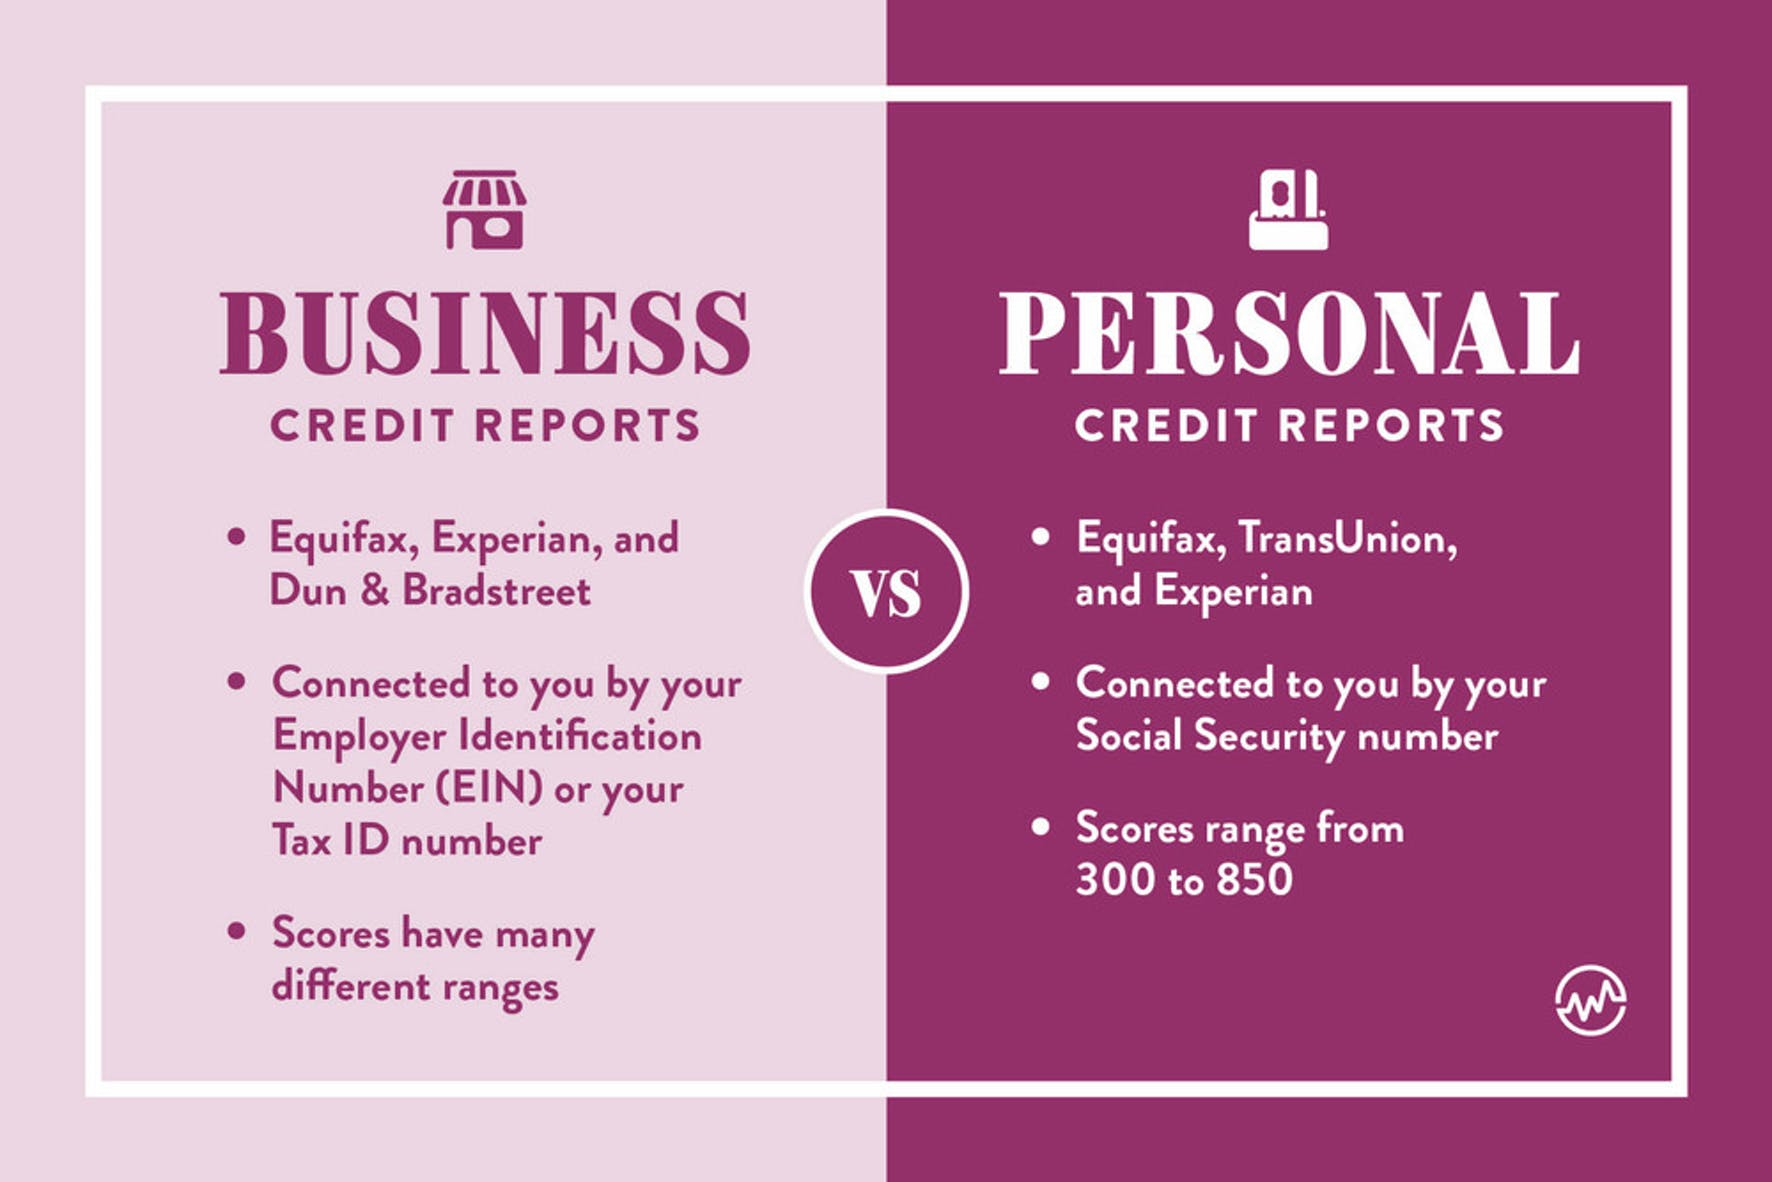 Business credit reports versus personal credit reports graphic